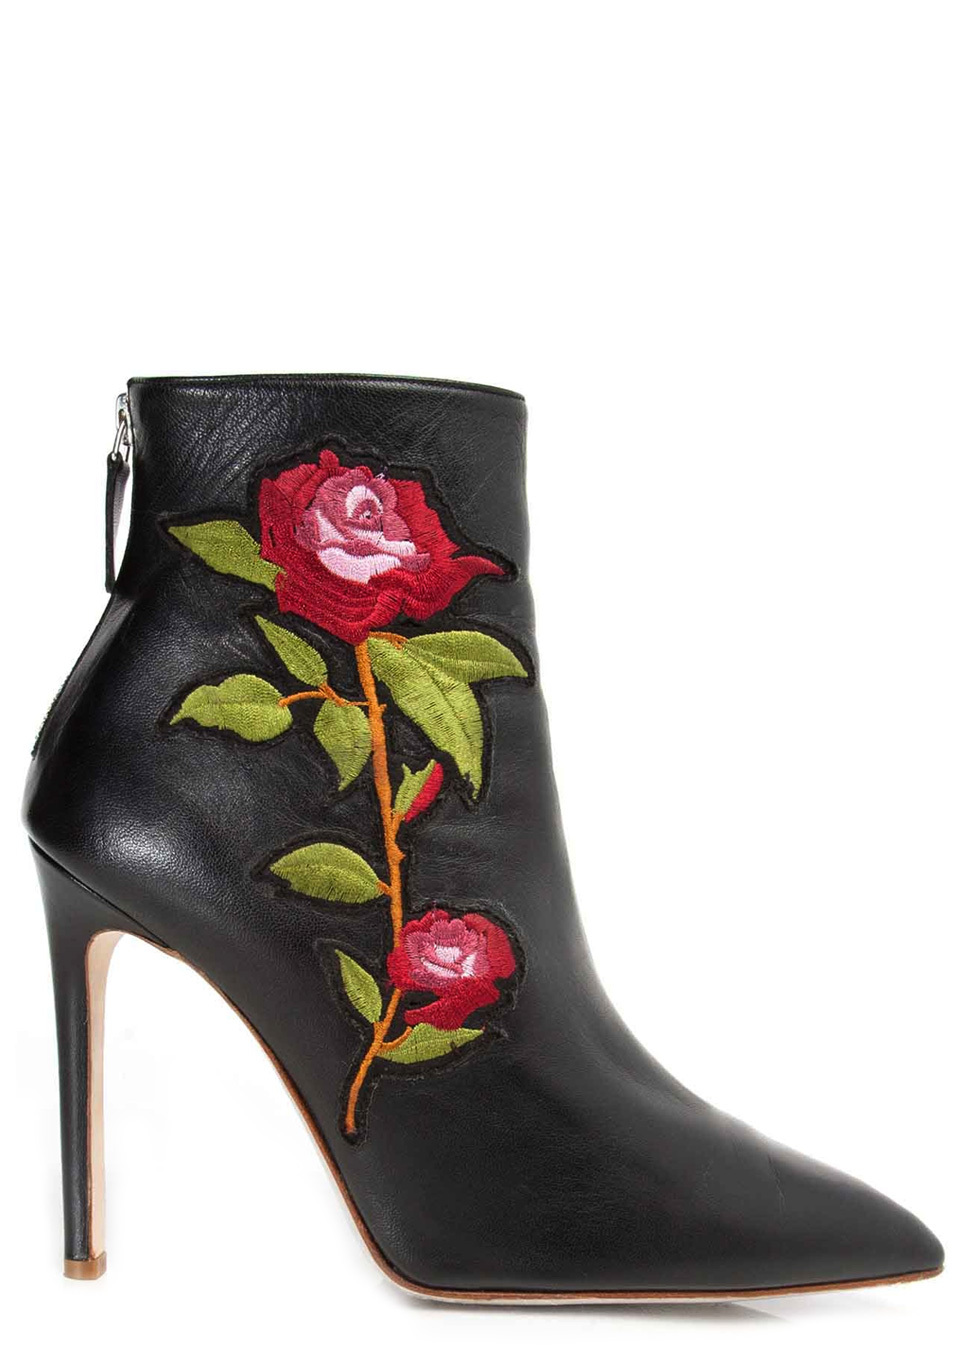 India Black Nappa Embroidery Ankle Boots